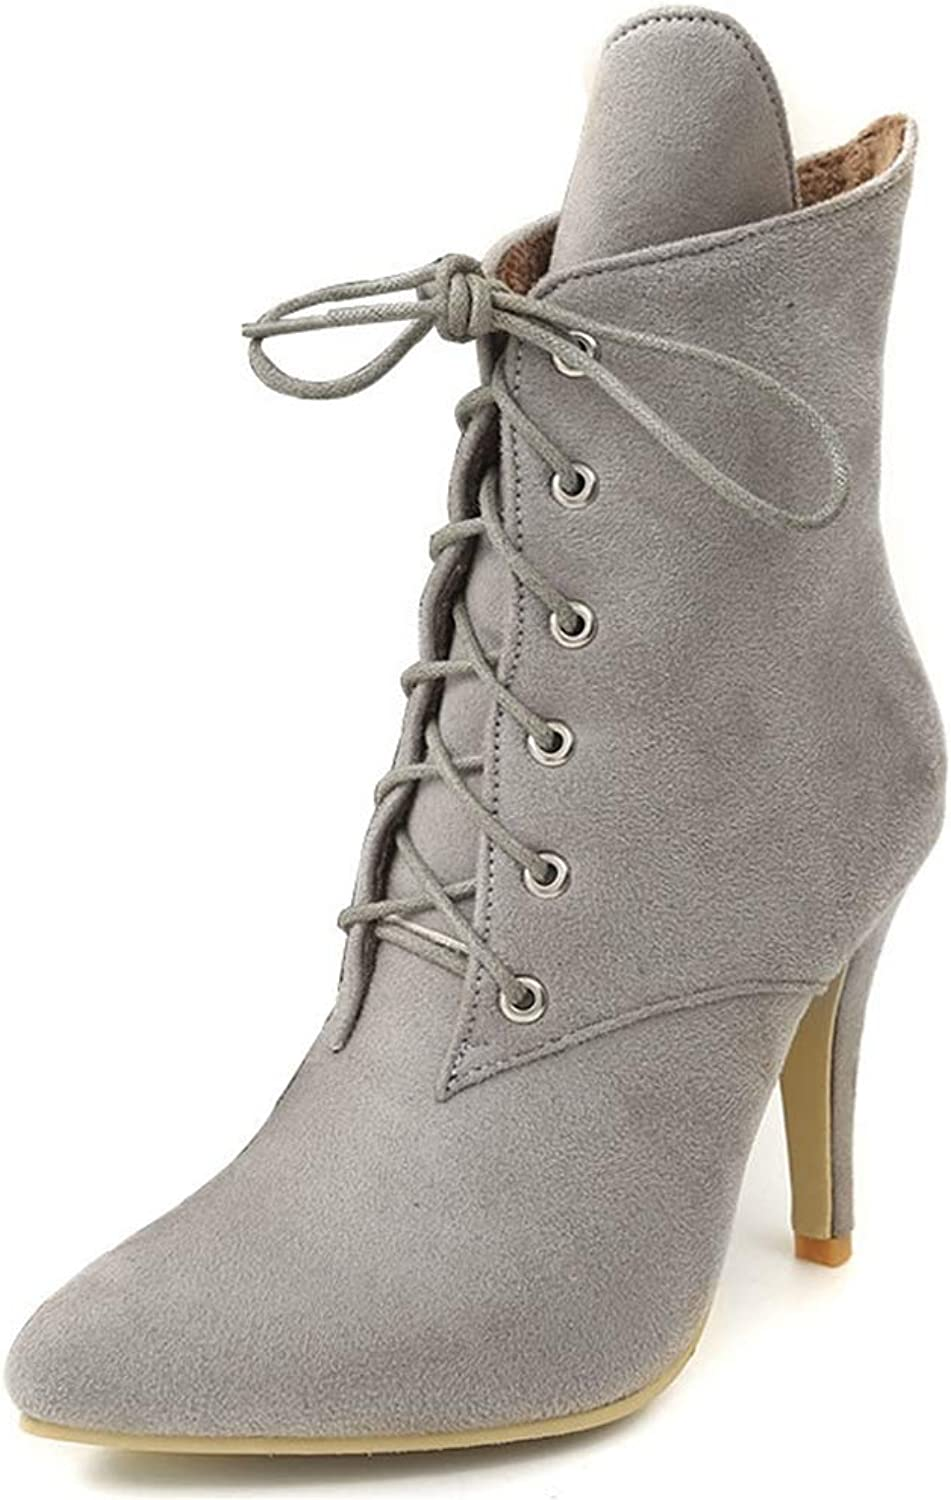 CYBLING Women's Pointed Toe Ankle Booties Fashion Lace Up Side Zipper Pencil Stiletto Heel Combat Boots